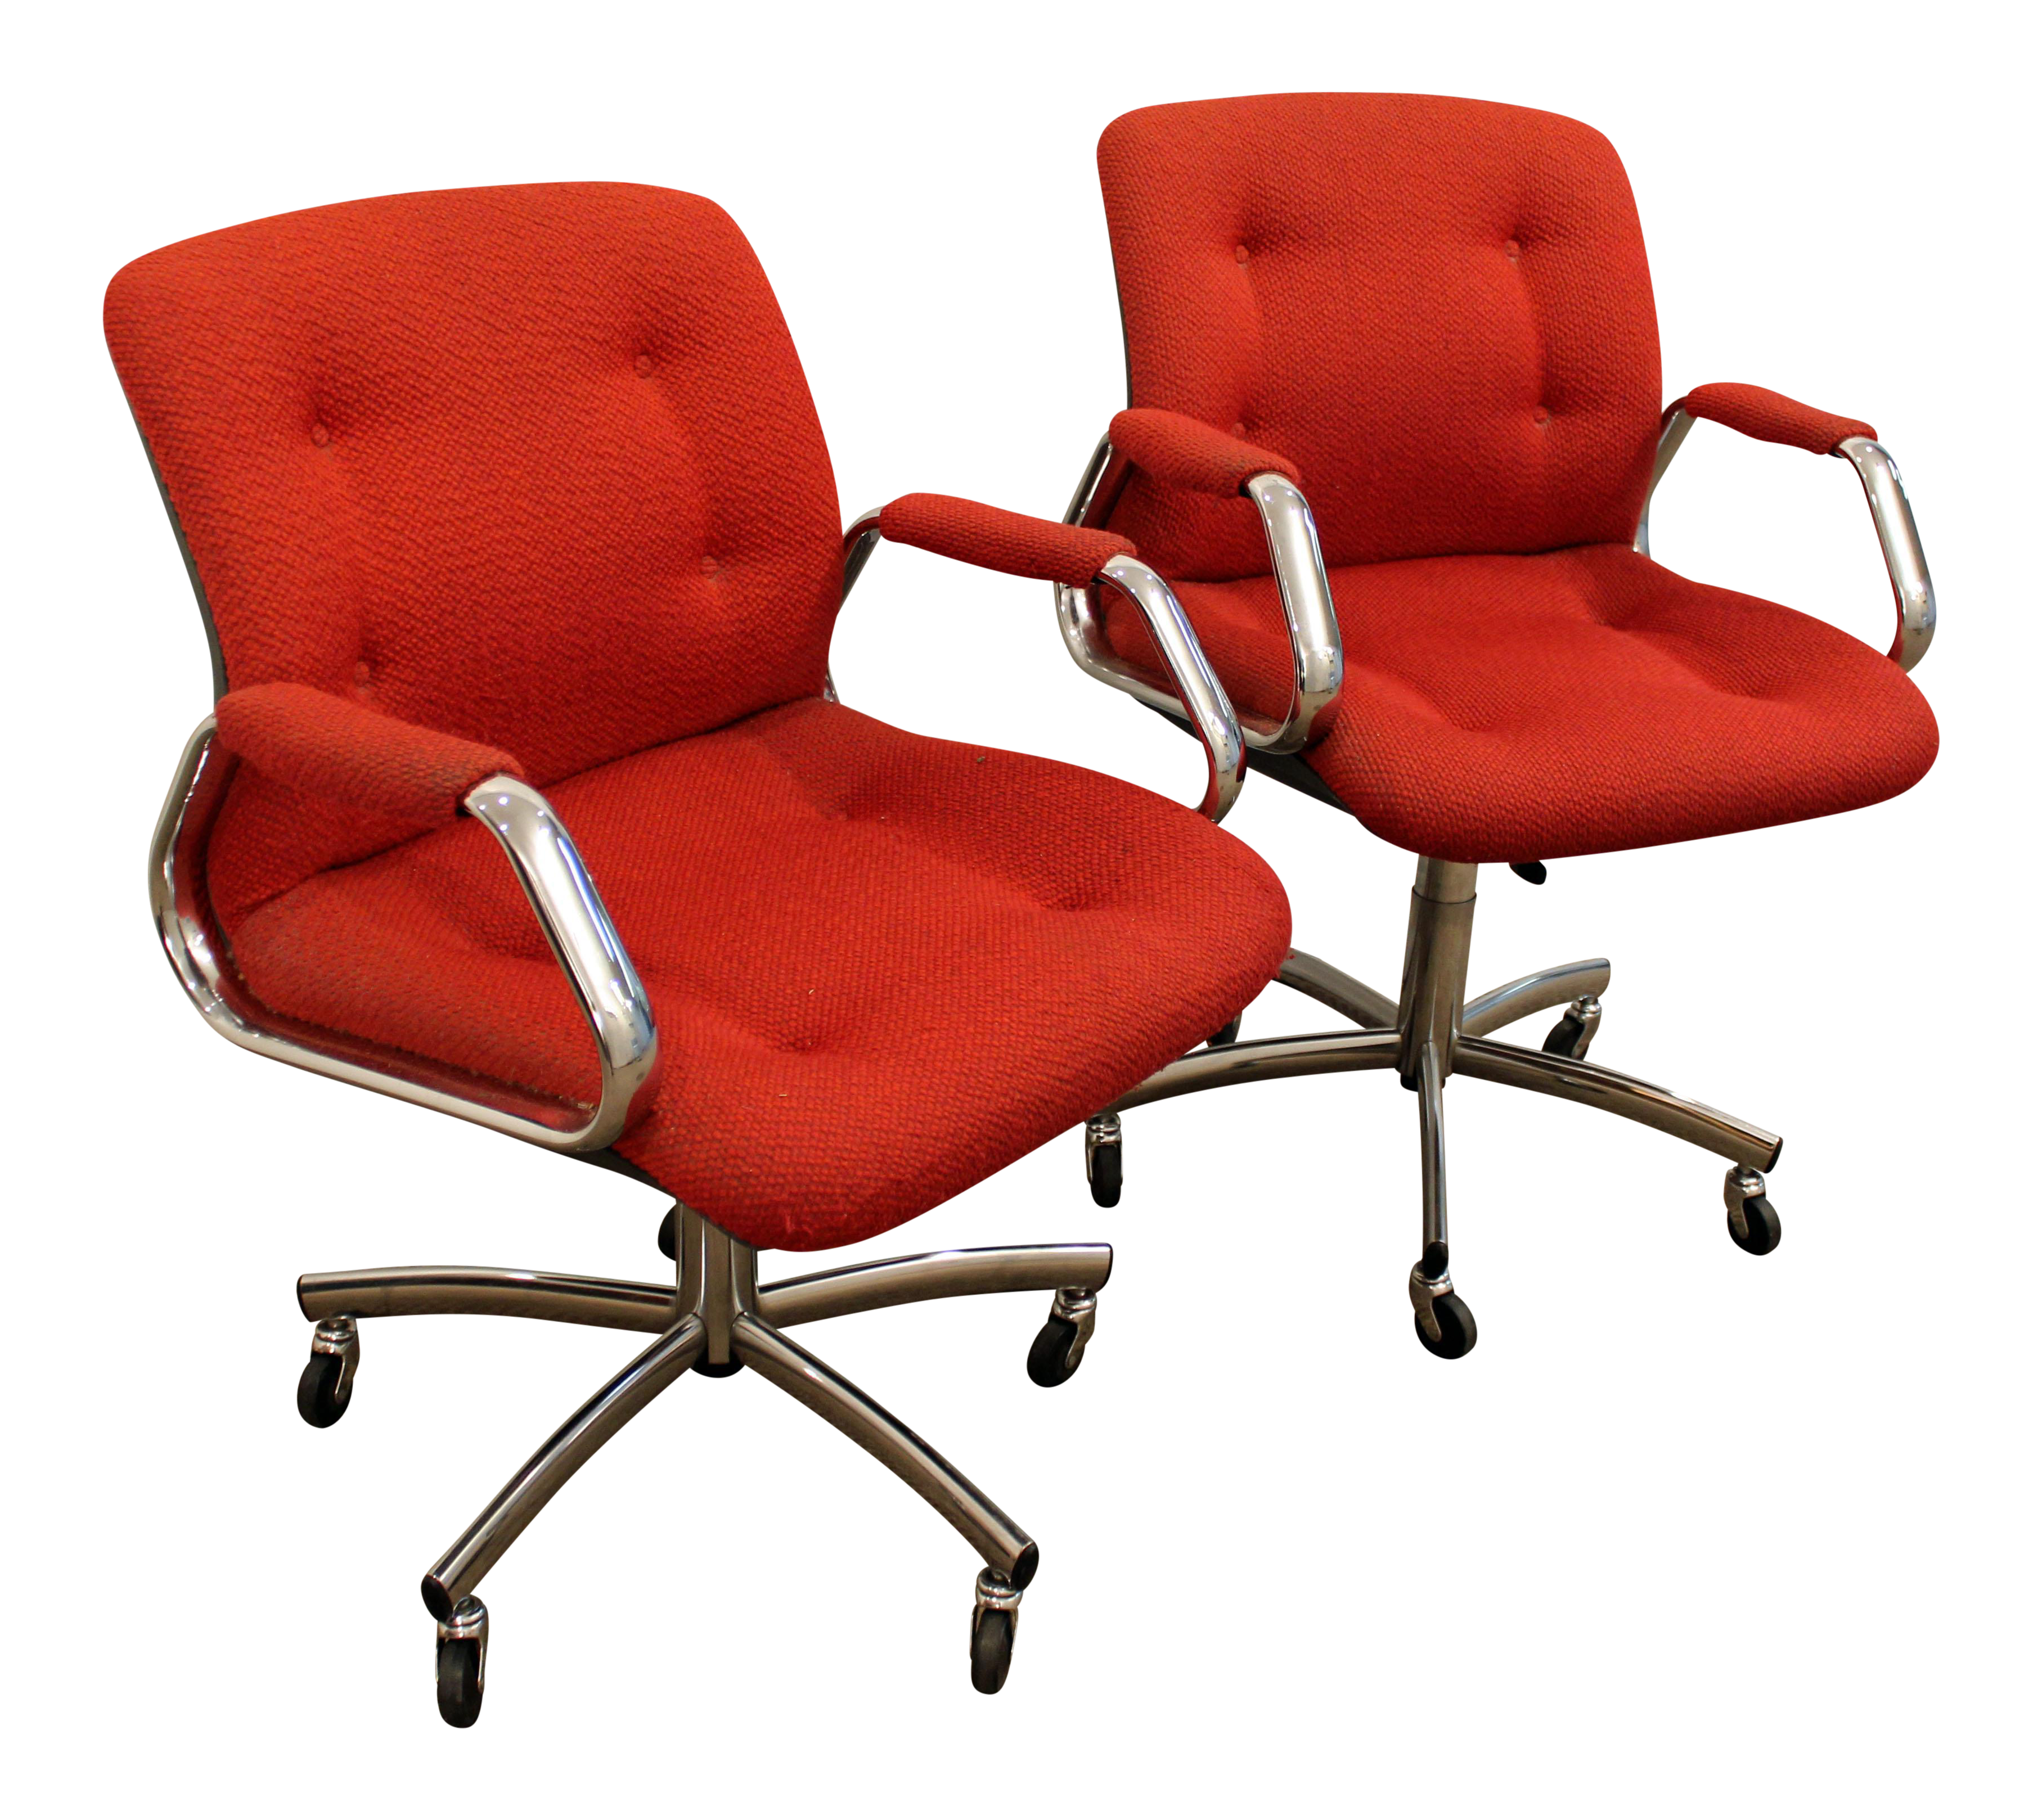 midcentury danish modern red chrome steelcase office chairs on wheels a pair